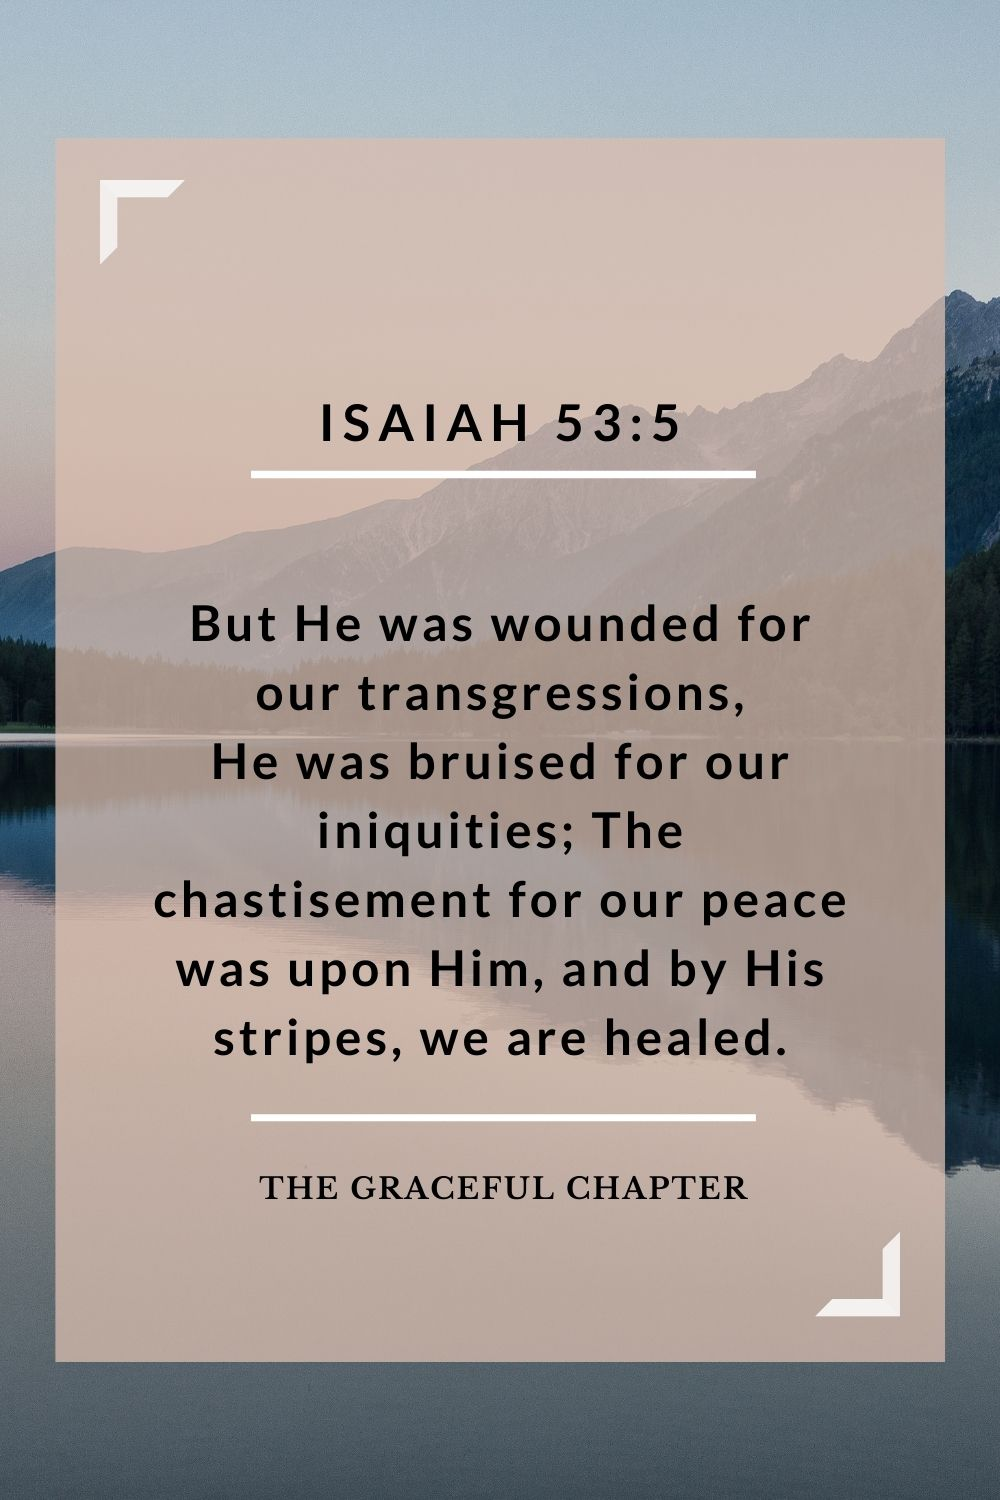 But He was wounded for our transgressions, He was bruised for our iniquities; The chastisement for our peace was upon Him, and by His stripes we are healed. Isaiah 53:5